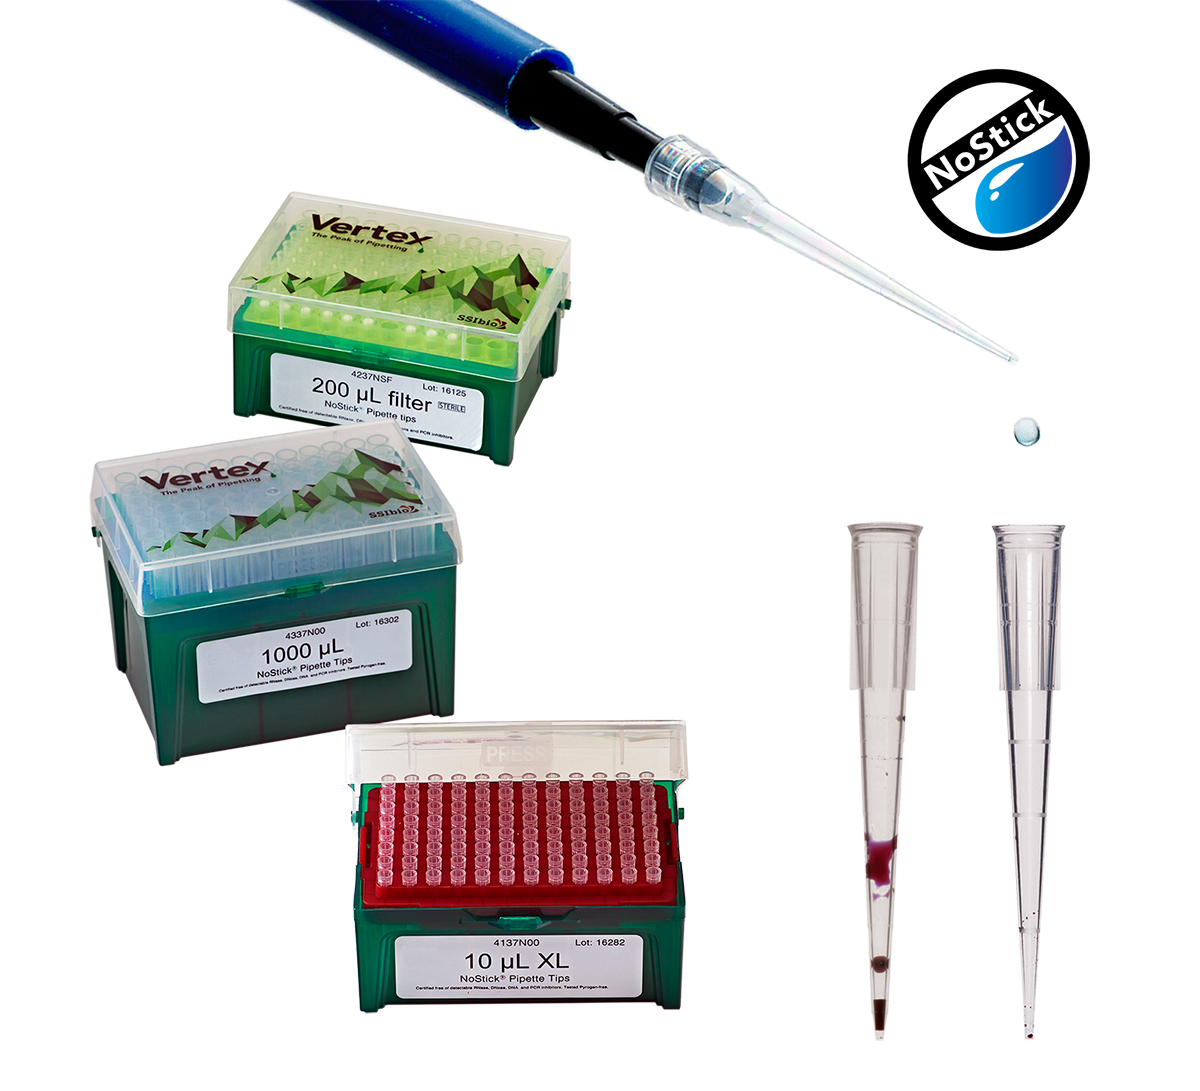 Pipette drawing rack. Nostick low retention tips